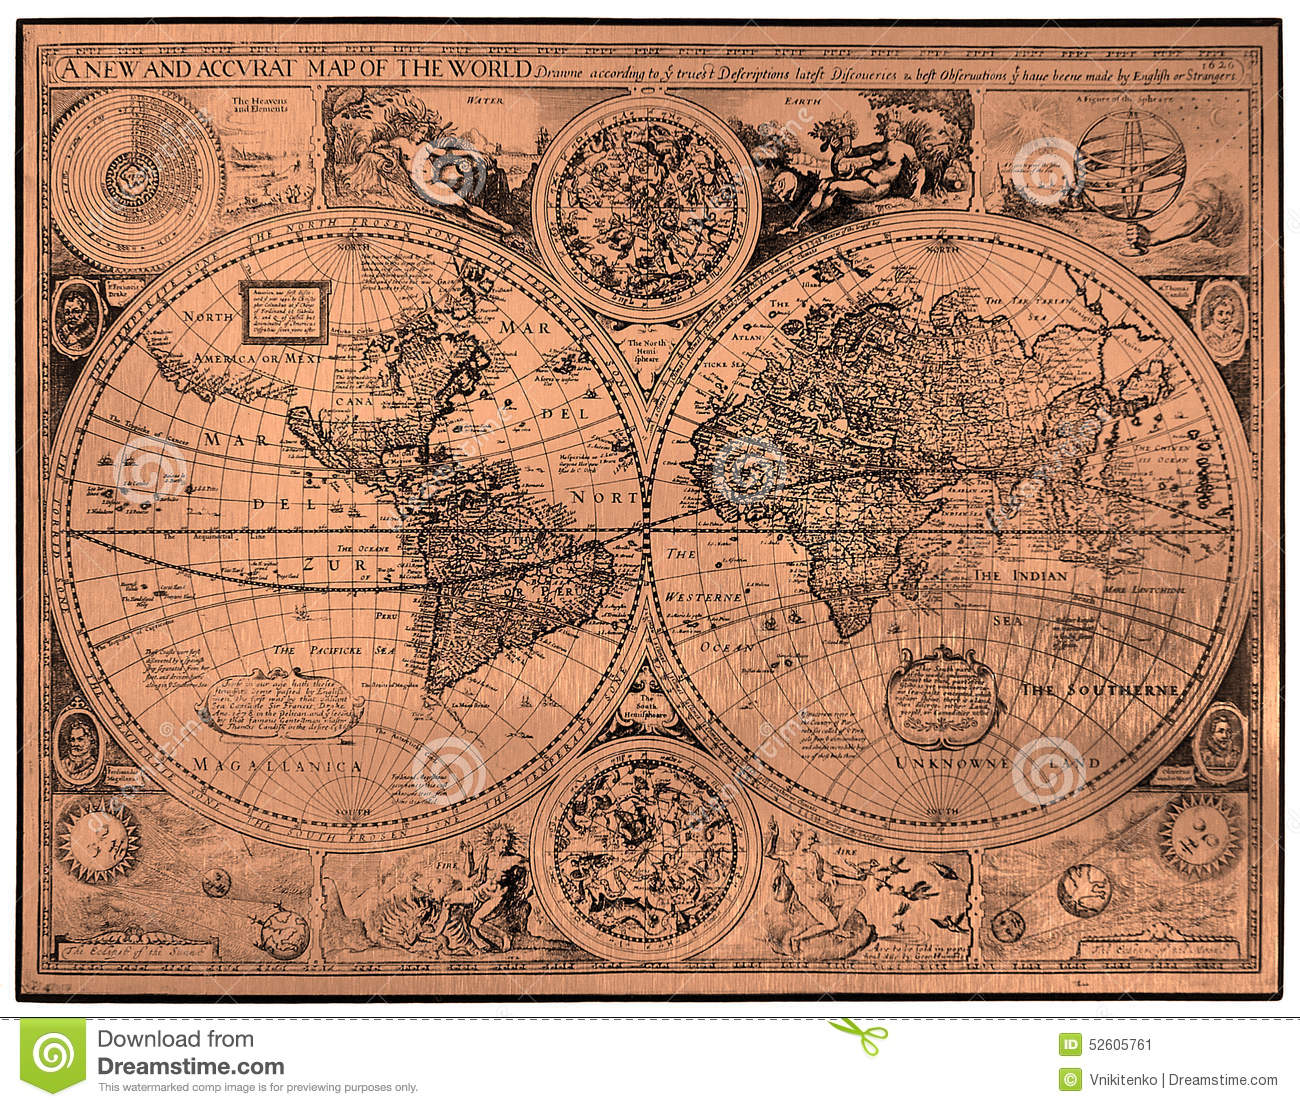 Map of ancient world stock image image of atlas historic 52605761 map of ancient world gumiabroncs Gallery